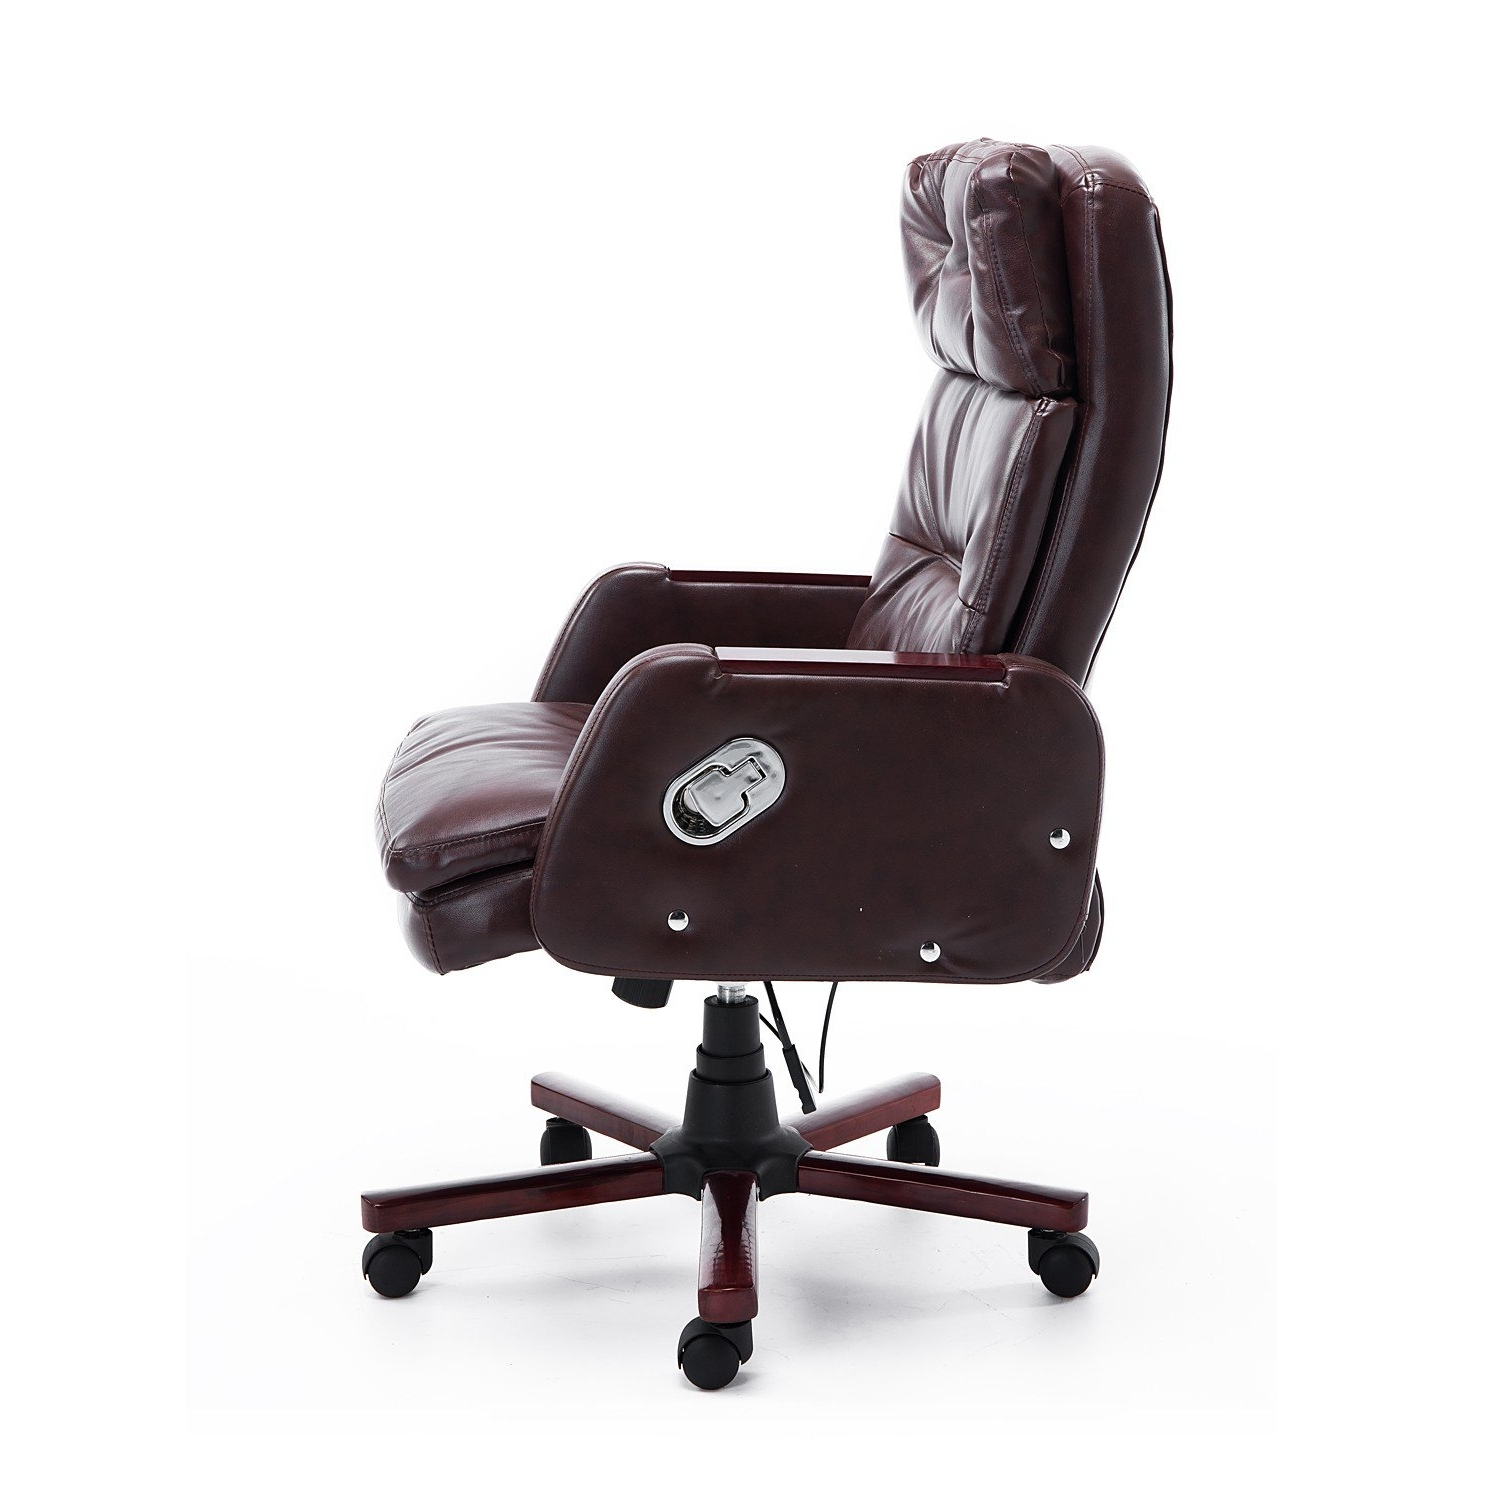 Most Recent Homcom Faux Leather Reclining Office Chair Seat With Adjustable In Executive Office Chairs With Back Support (View 18 of 20)